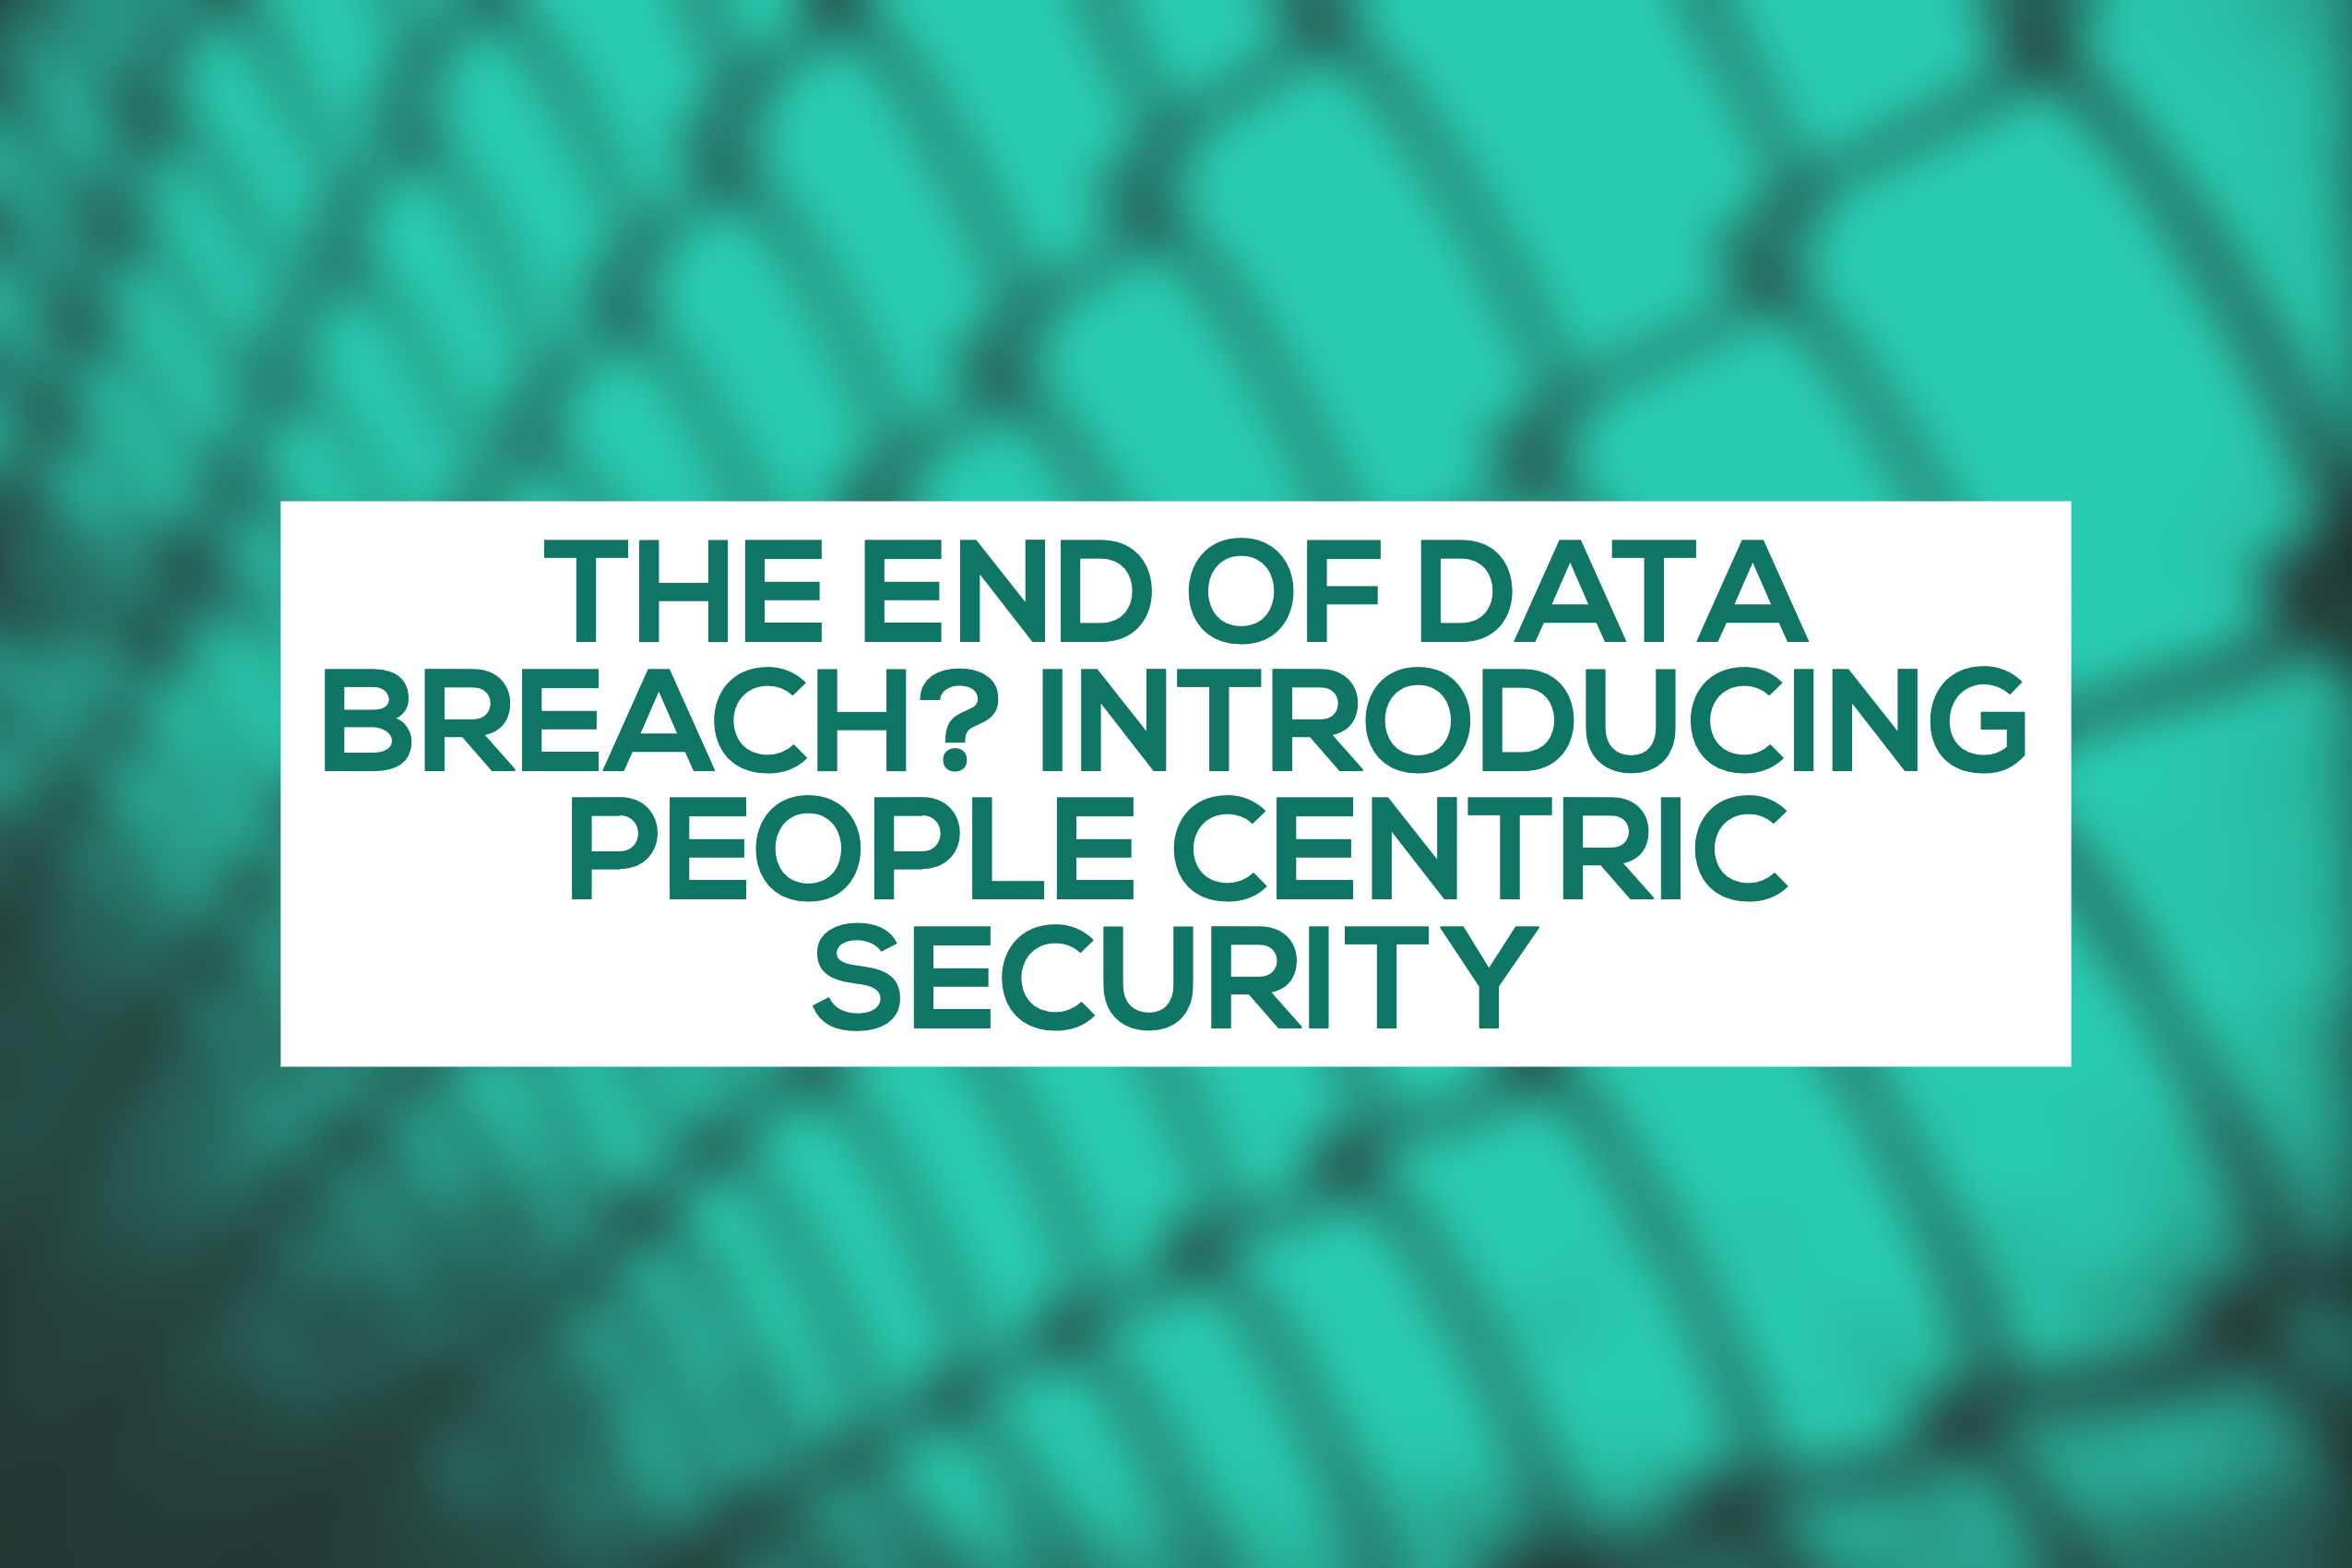 The end of data breach? Introducing People Centric Security